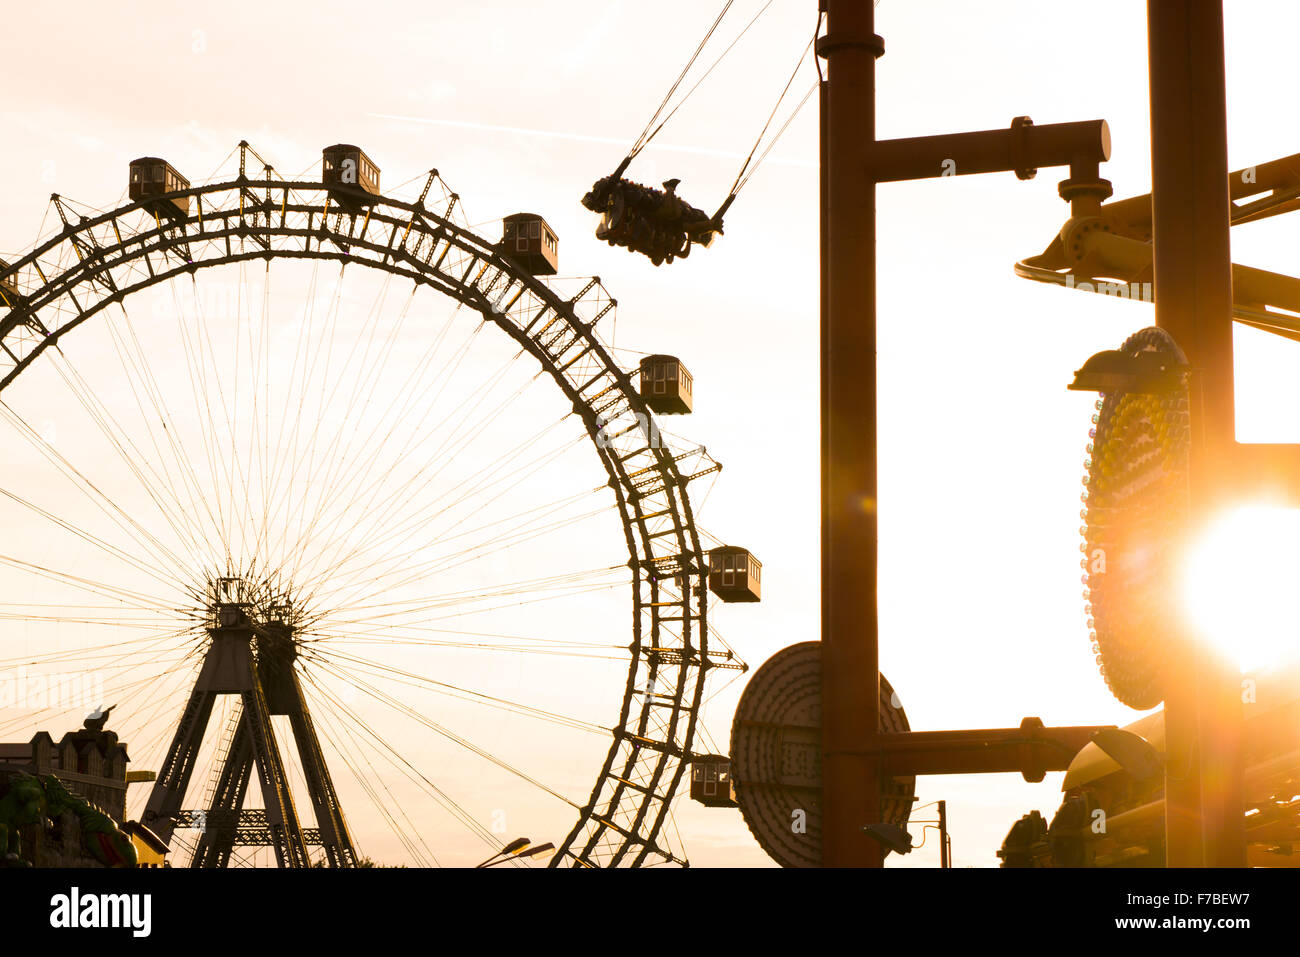 Prater, Riesenrad, Giant ferry wheel, Vienna, Austria, 2. distretto Foto Stock